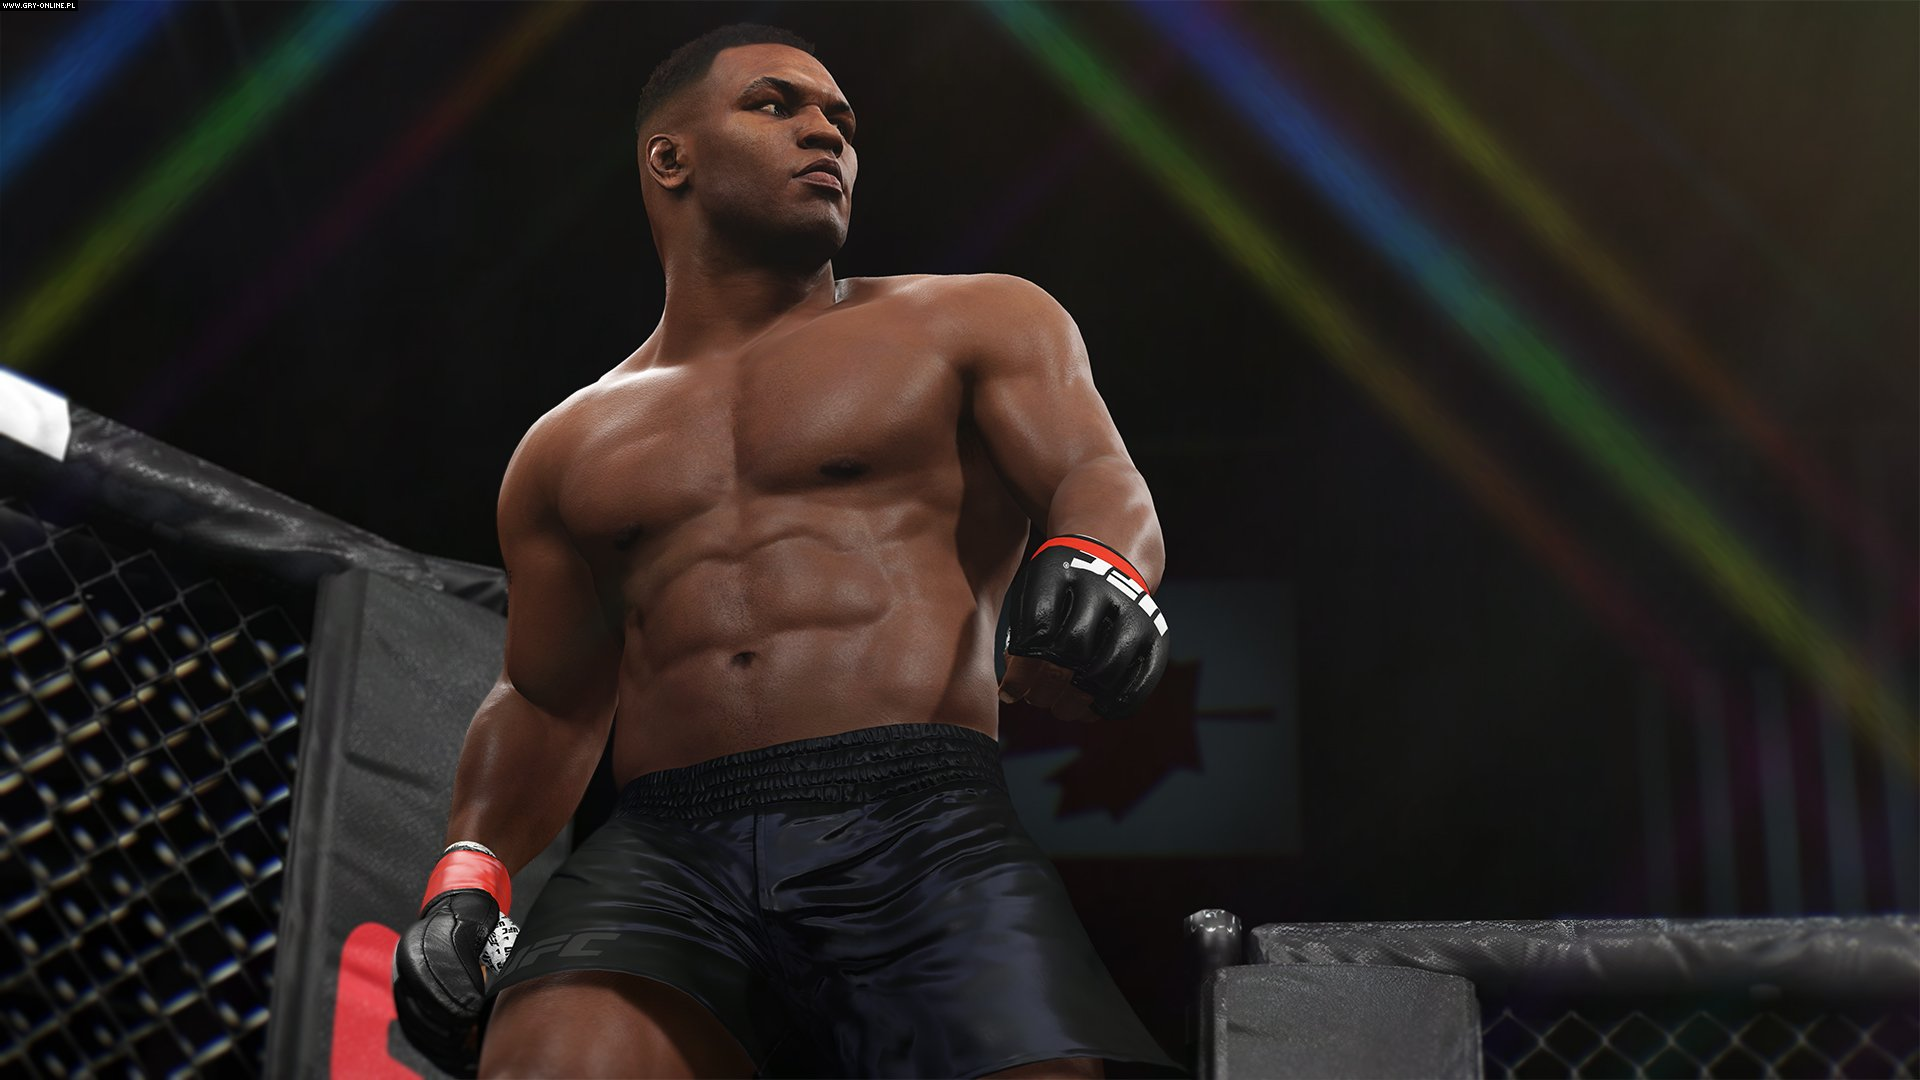 EA Sports UFC 2 PS4, XONE Games Image 1/3, EA Sports, Electronic Arts Inc.